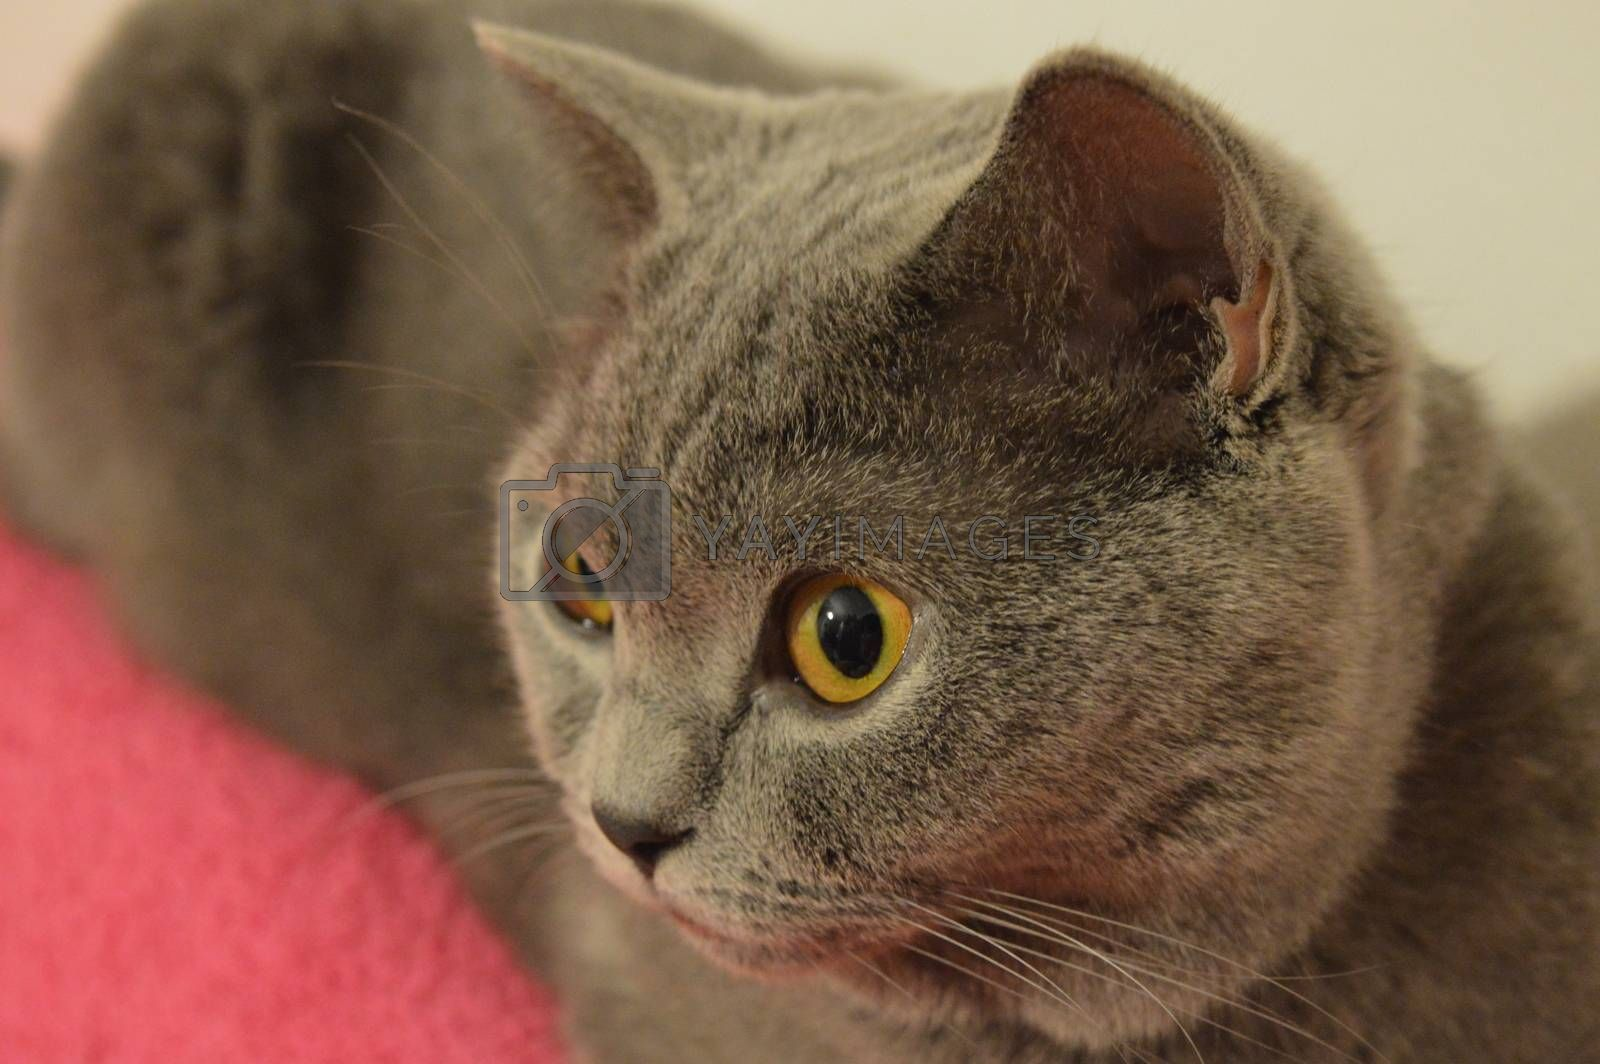 Portrait of young short-haired British gray cat with yellow eyes